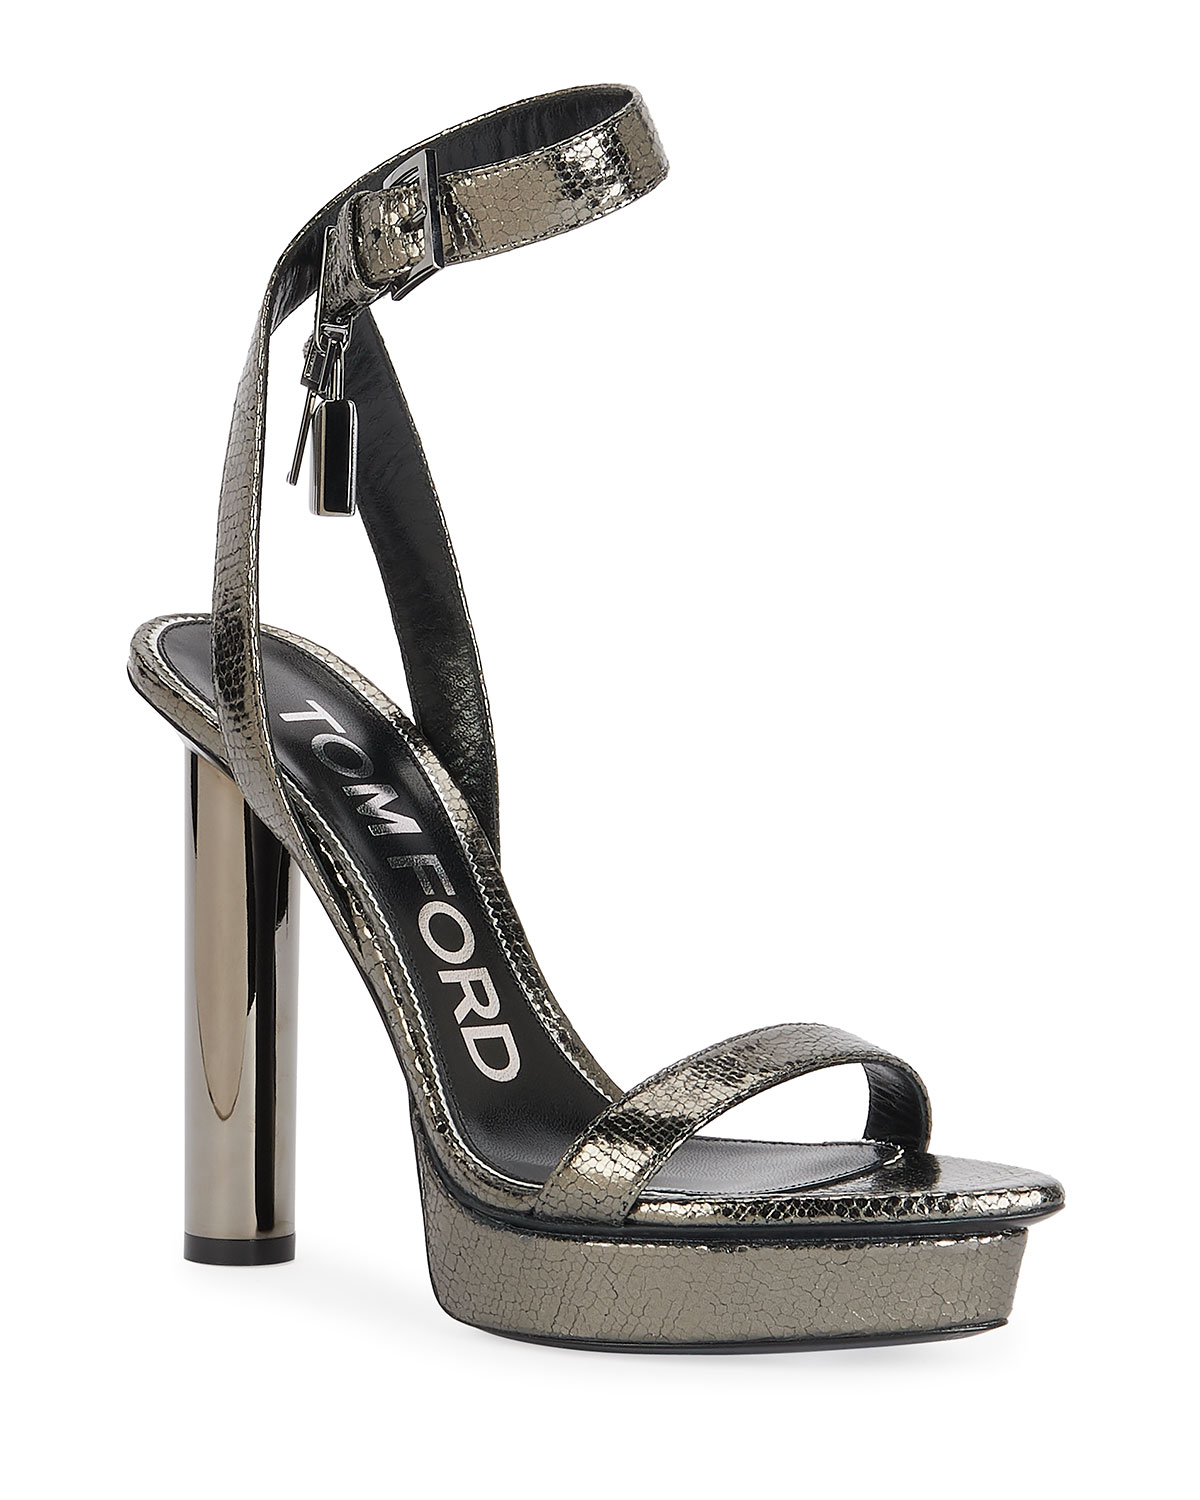 TOM FORD 125mm Lizard-Print Platform Lock Sandals